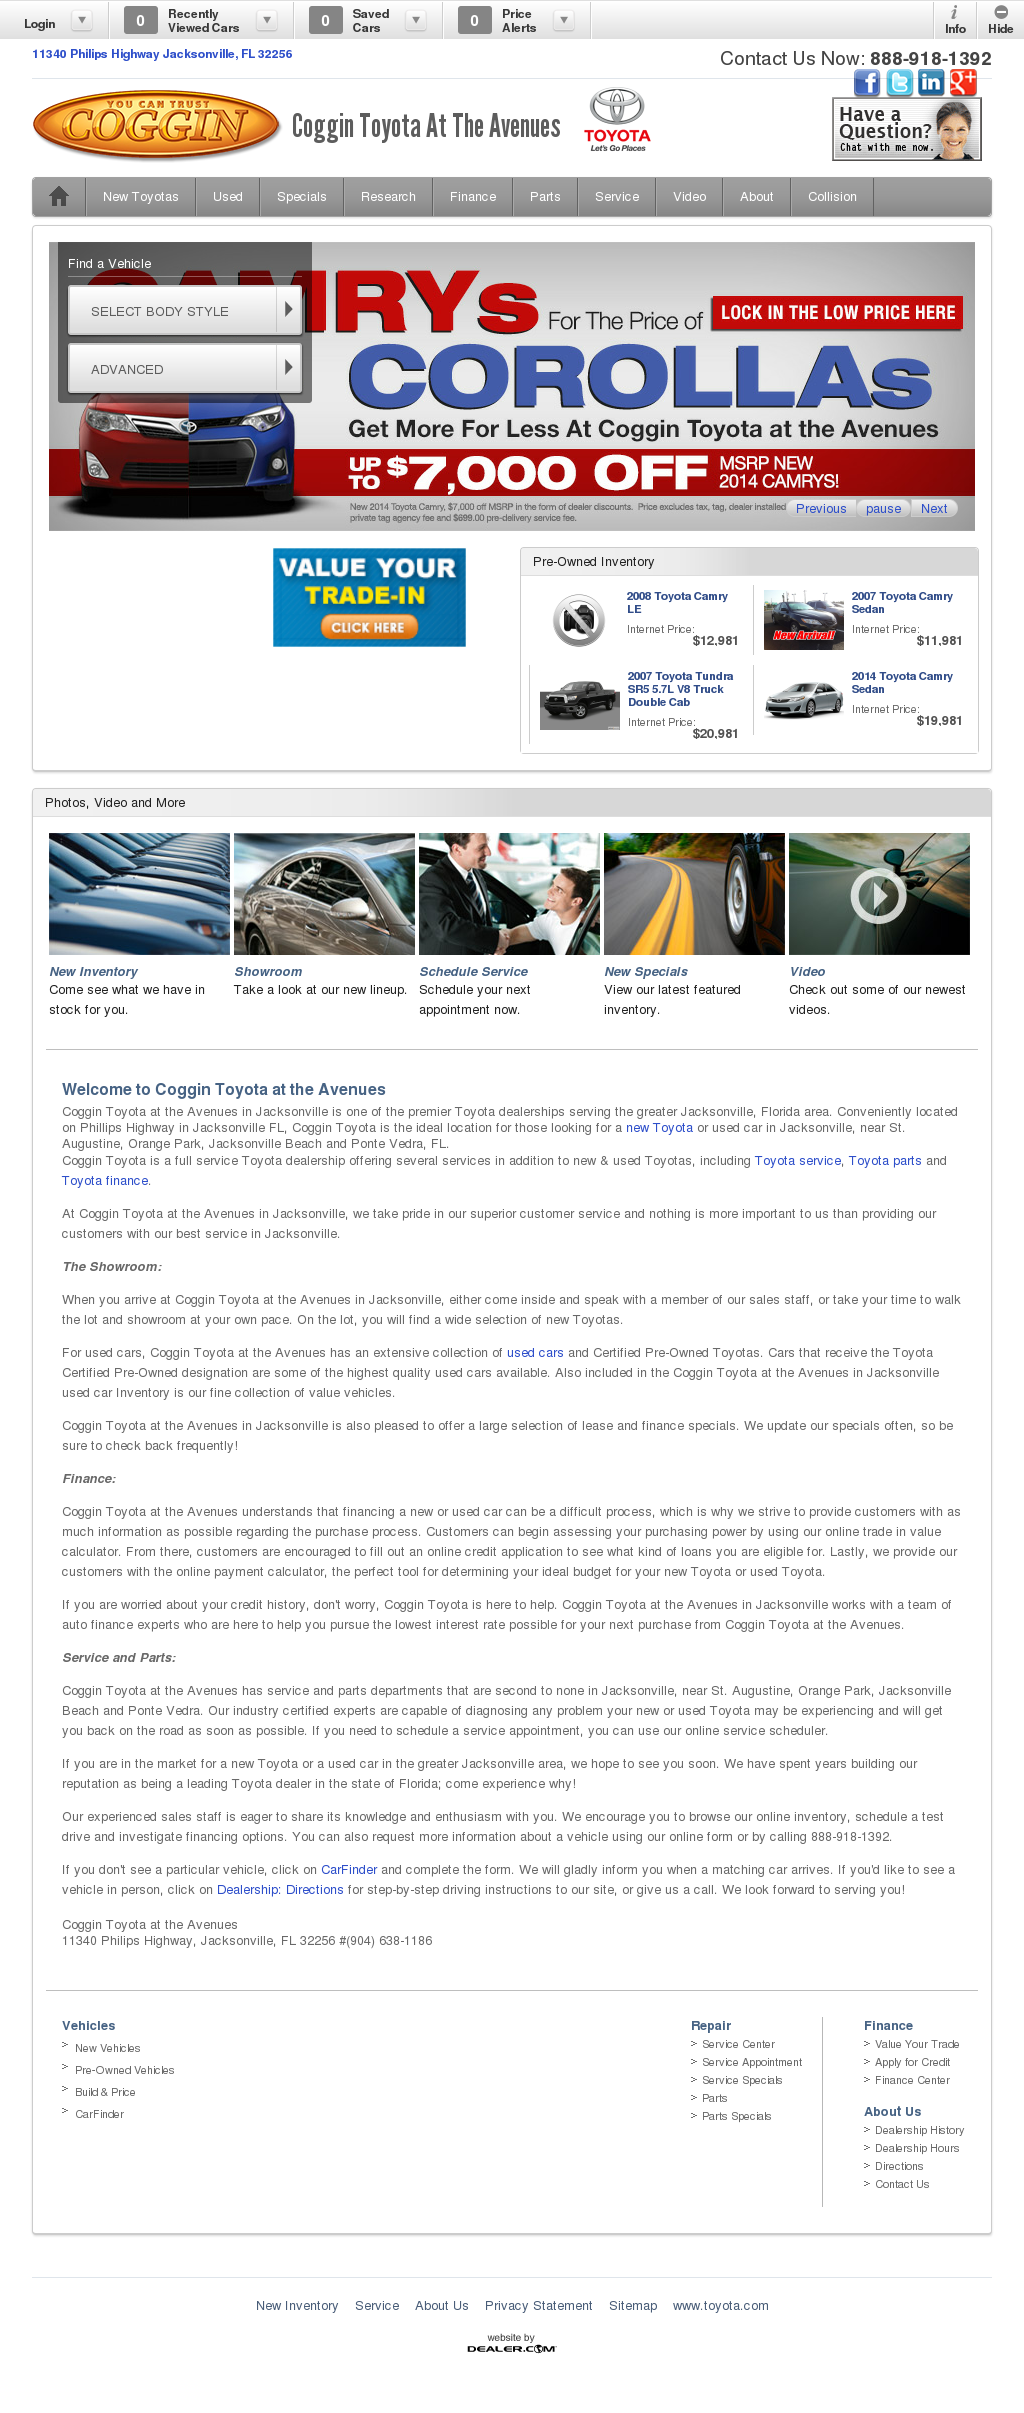 Coggin Toyota Of The Avenues Website History